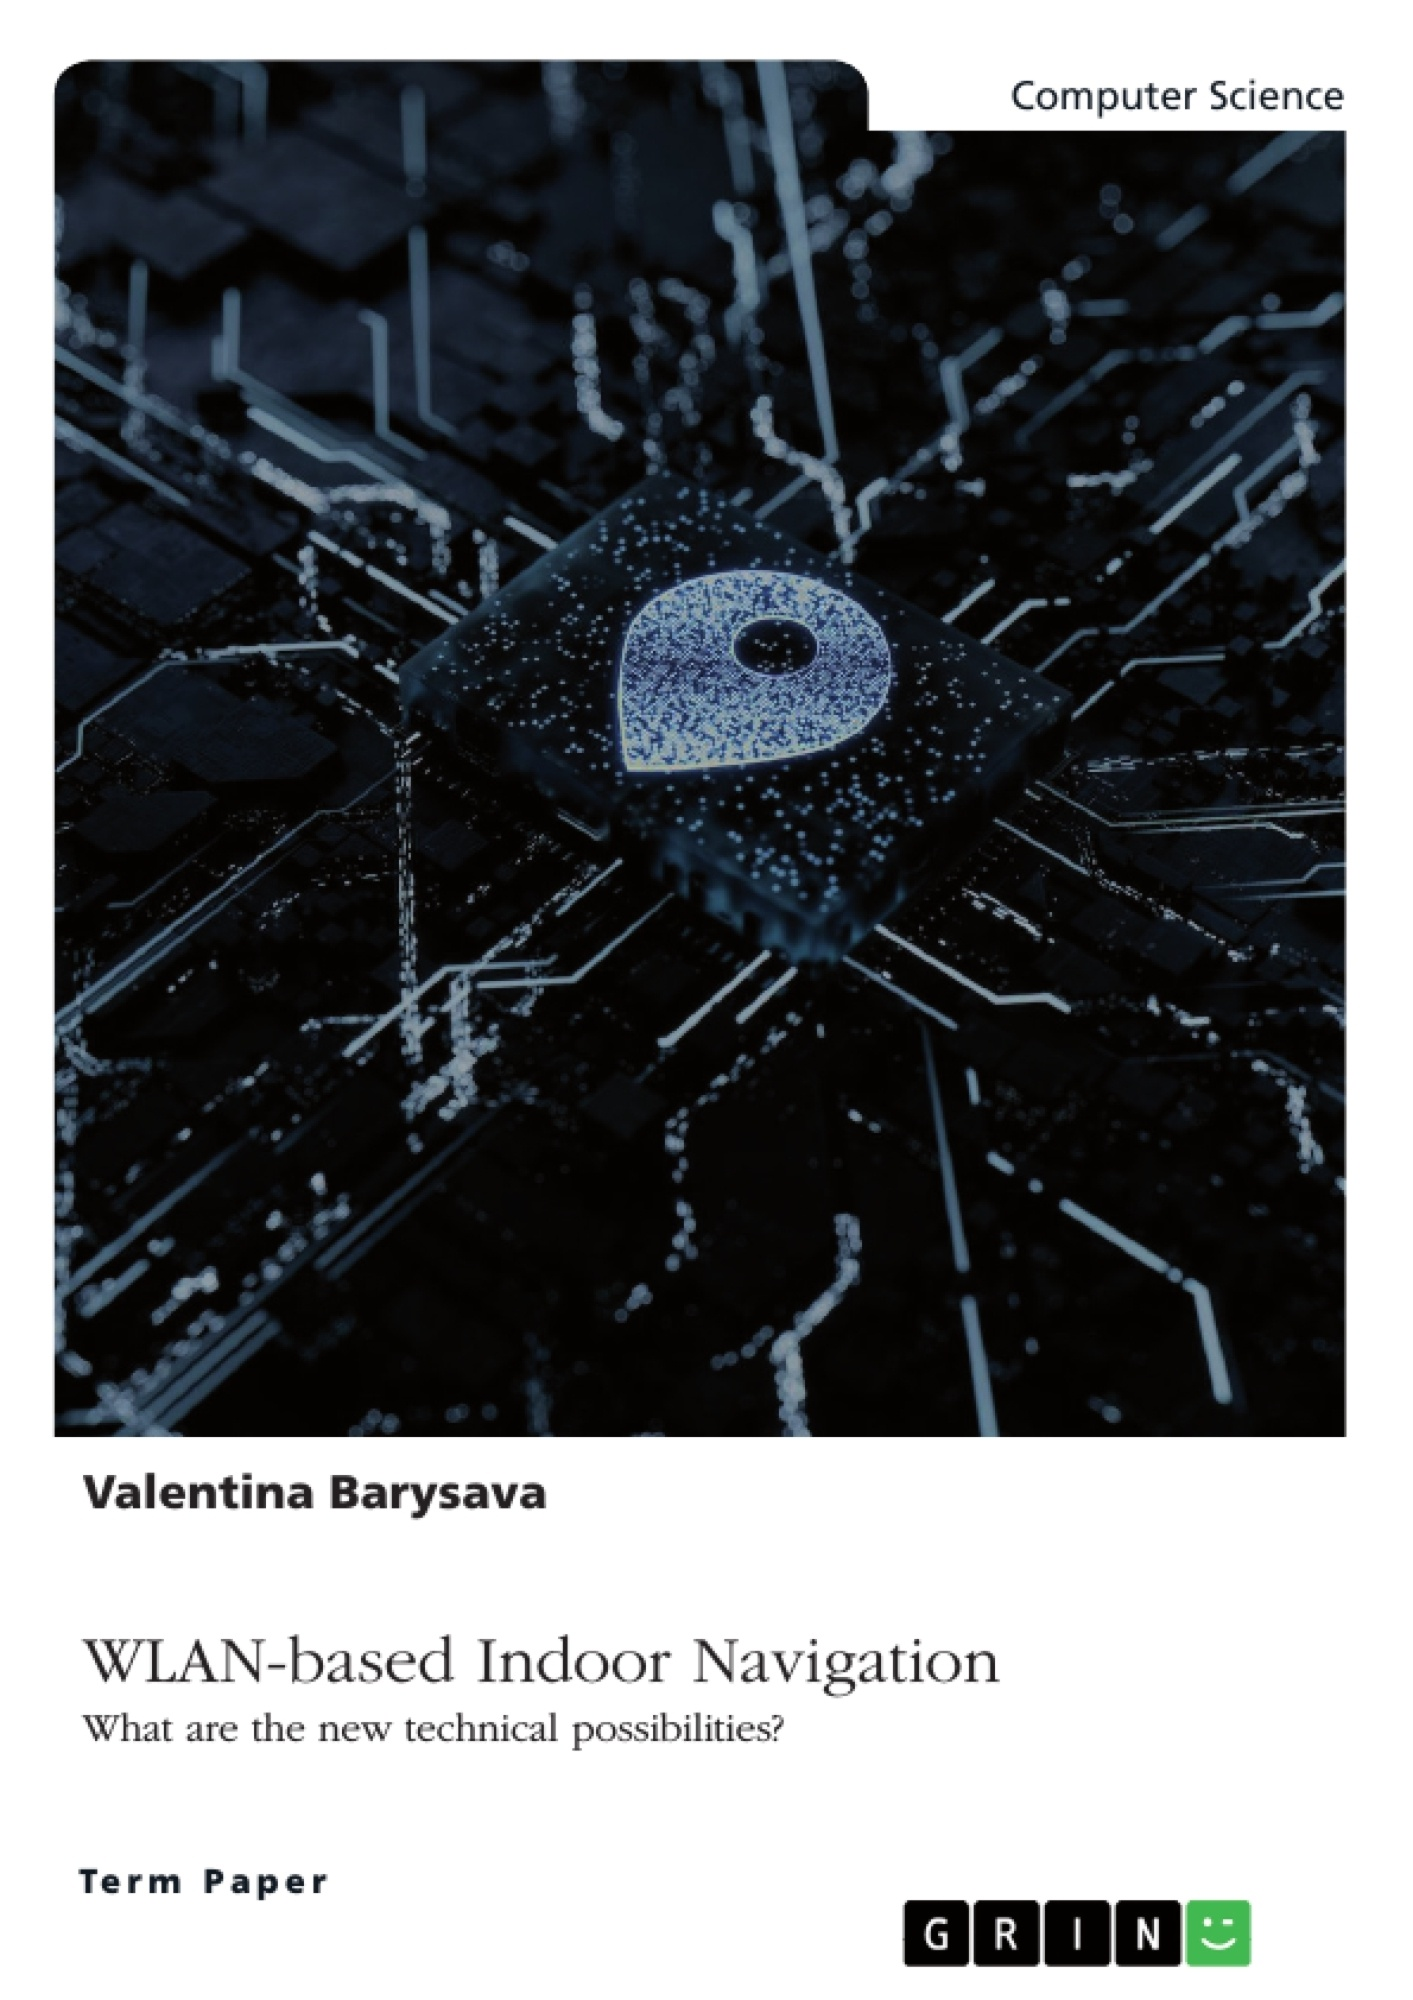 Title: WLAN-based Indoor Navigation. What are the new technical possibilities?